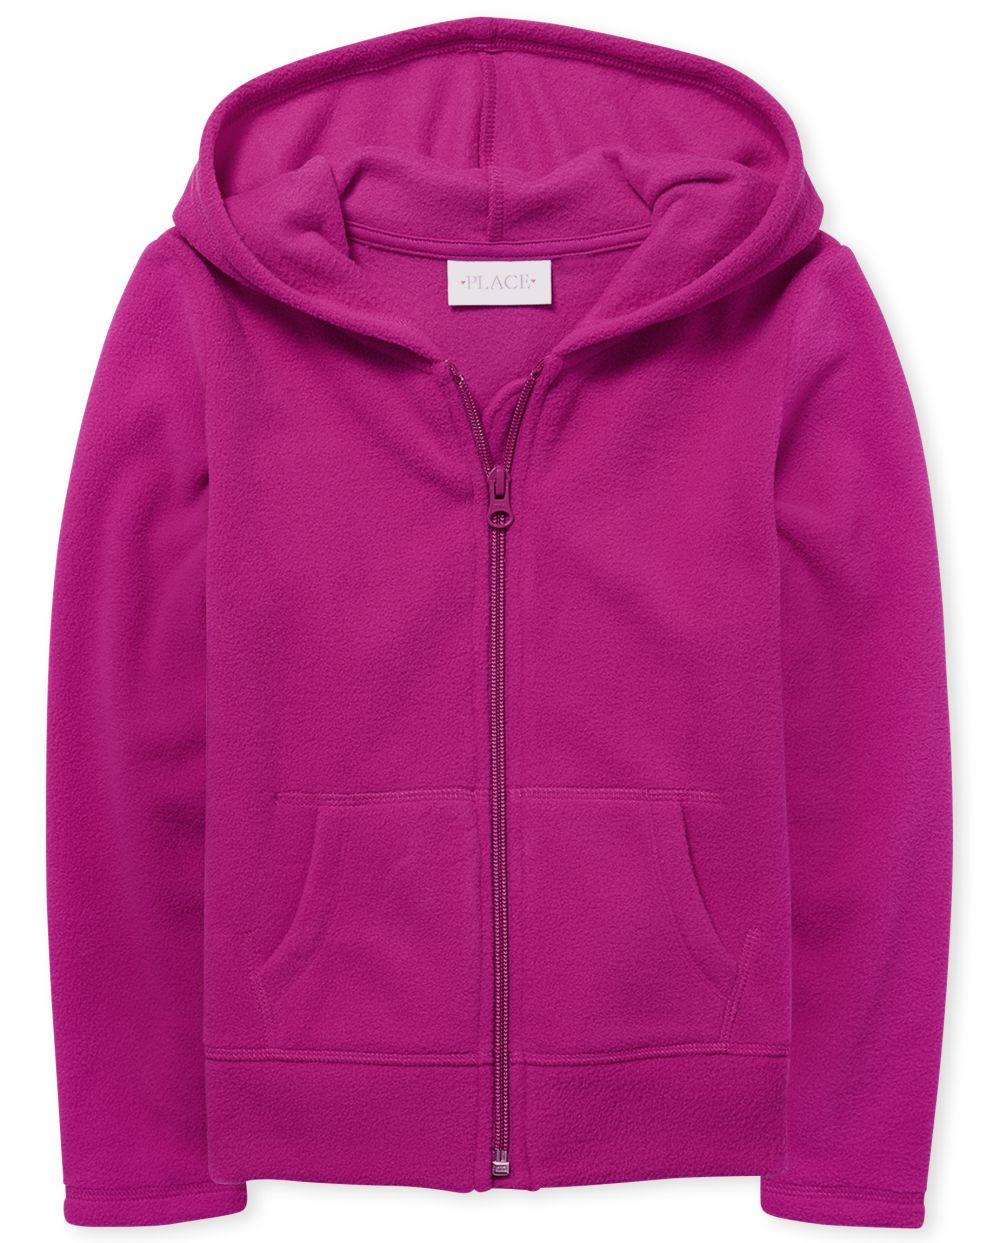 Girls Uniform Fleece Zip Up Hoodie